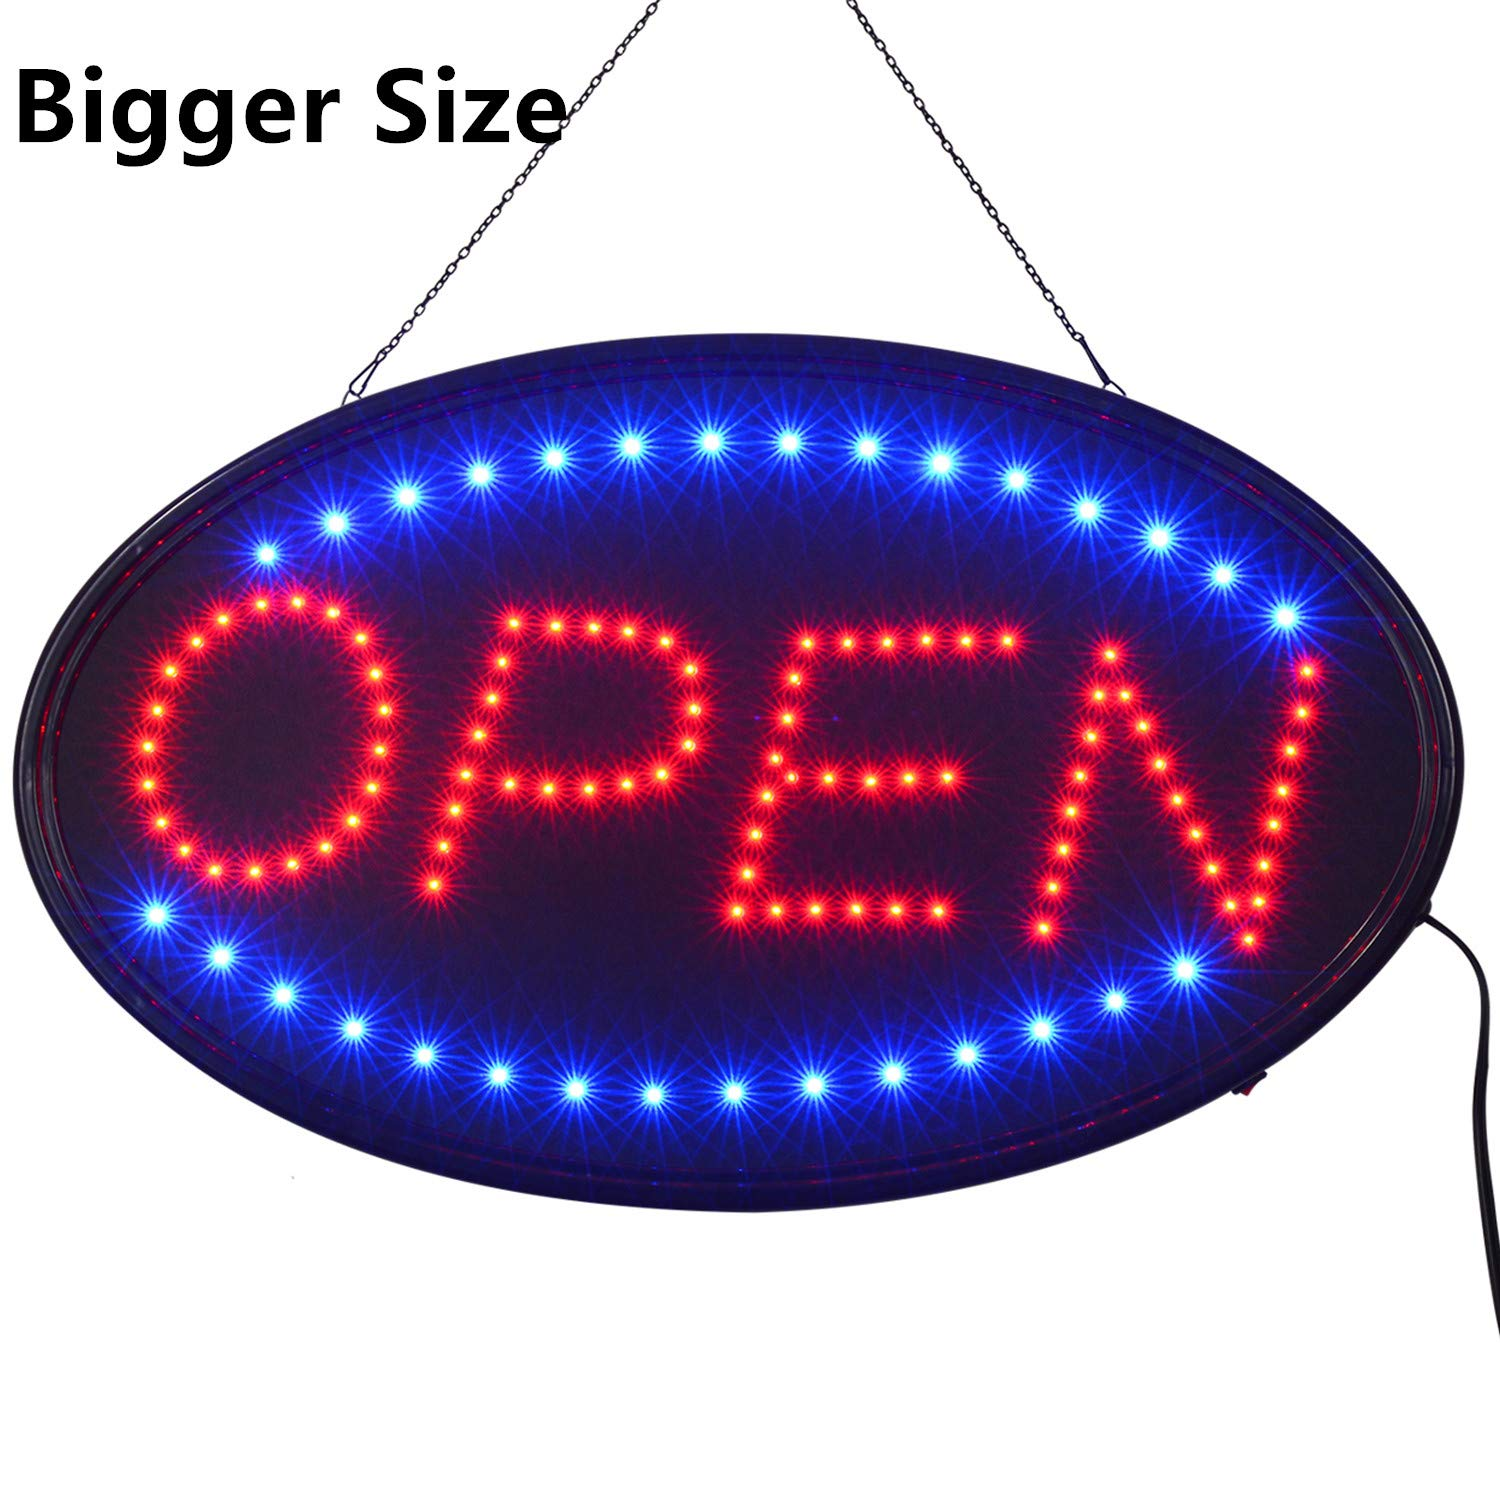 LED Open Sign,23x14inch Larger LED Business Sign,Advertisement Display Board Flashing & Steady Light Open Sign for Business, Walls, Window, Shop, Bar, Hotel by Datedirect (Image #1)